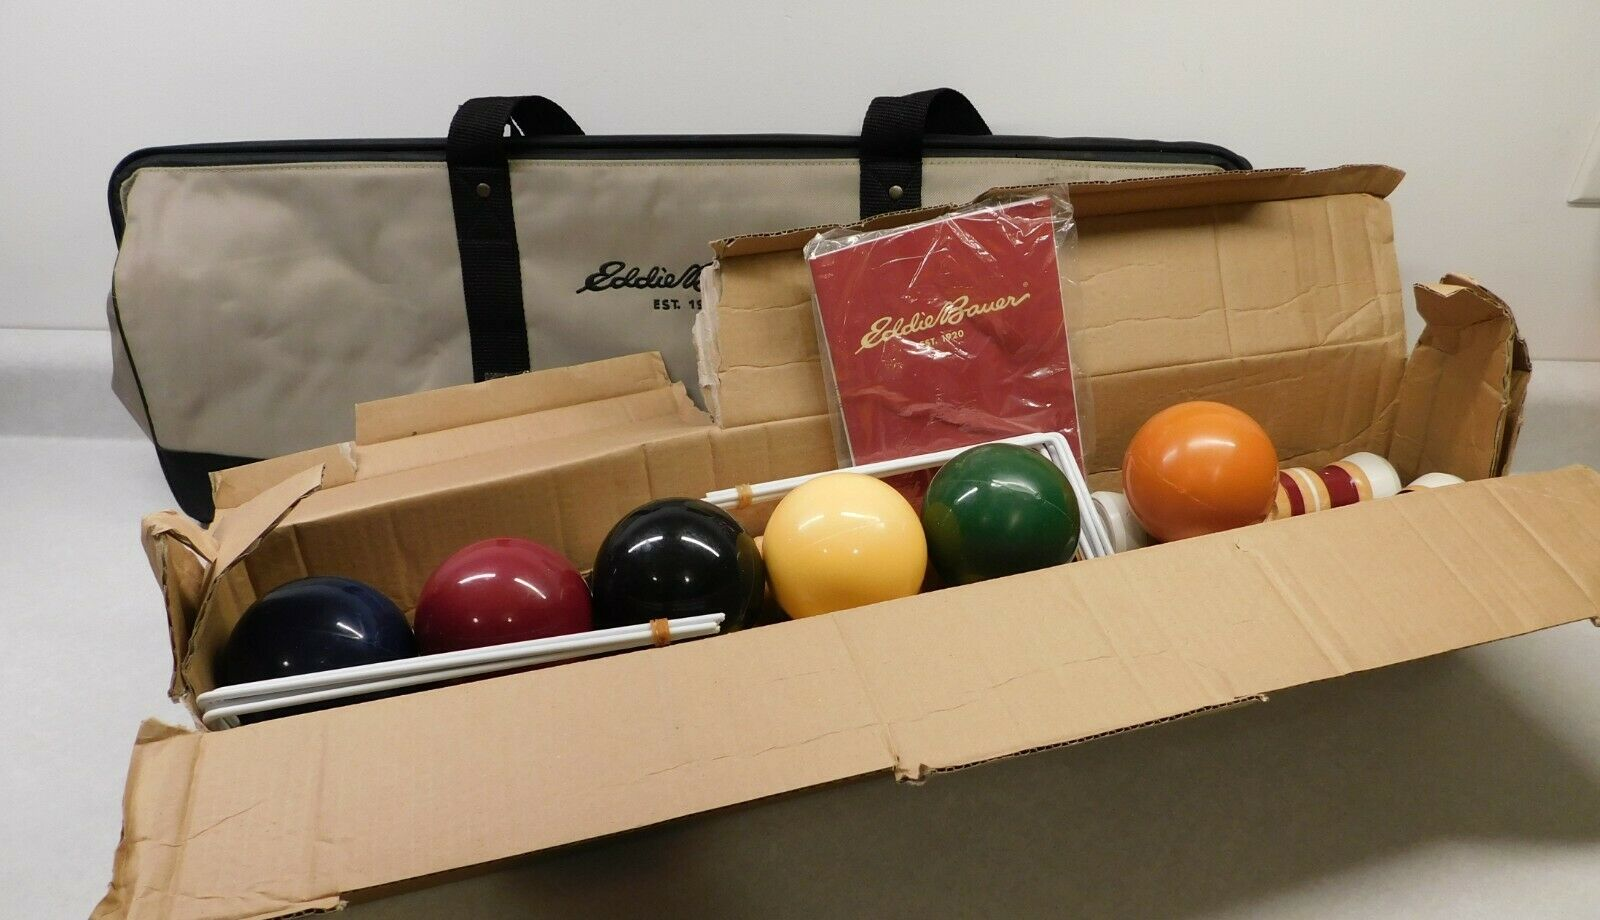 Eddie Bauer Croquet Set in Carrying Case, Complete family ya